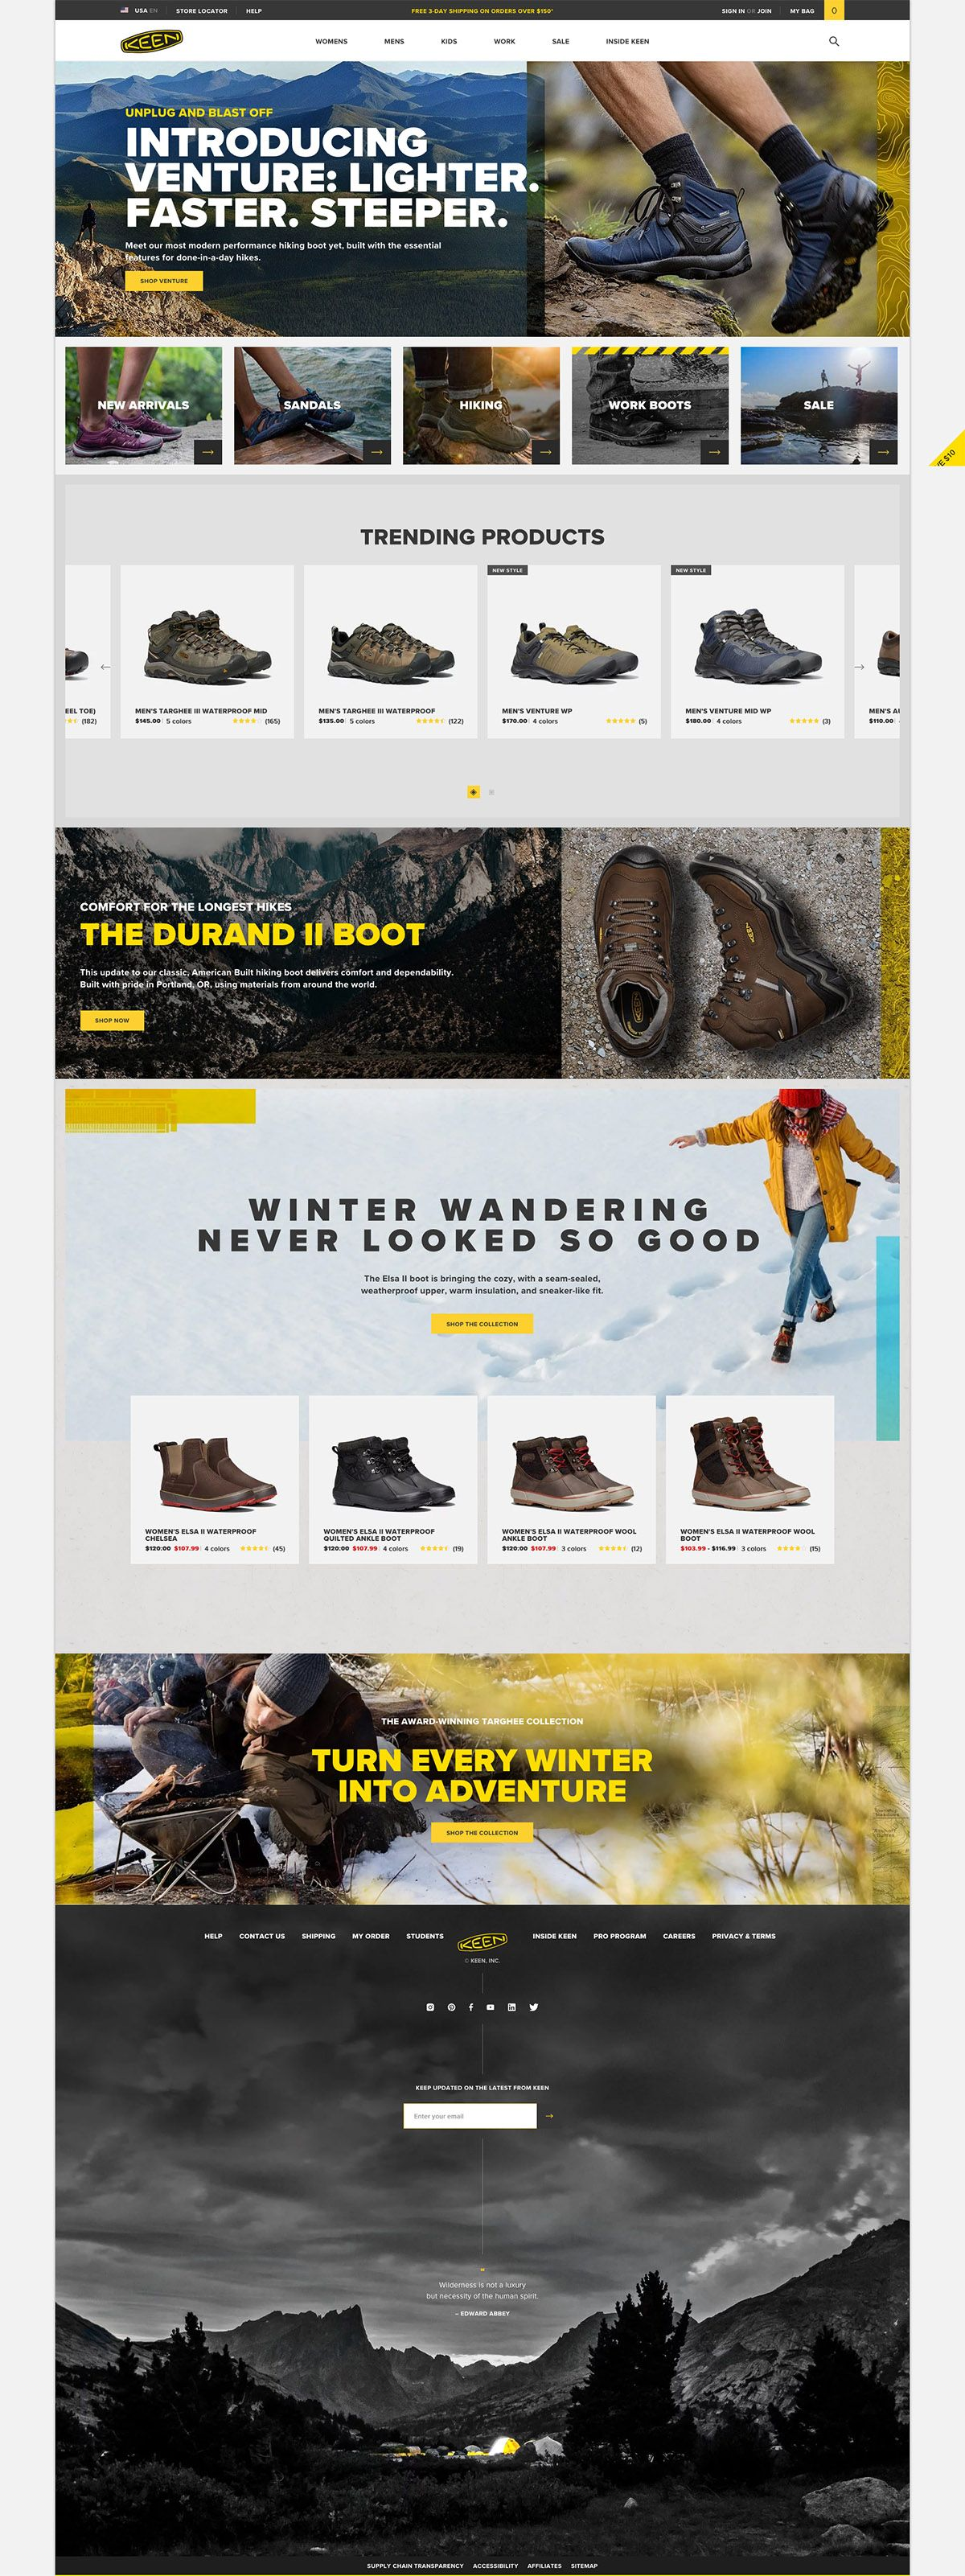 eCommerce website: KEEN